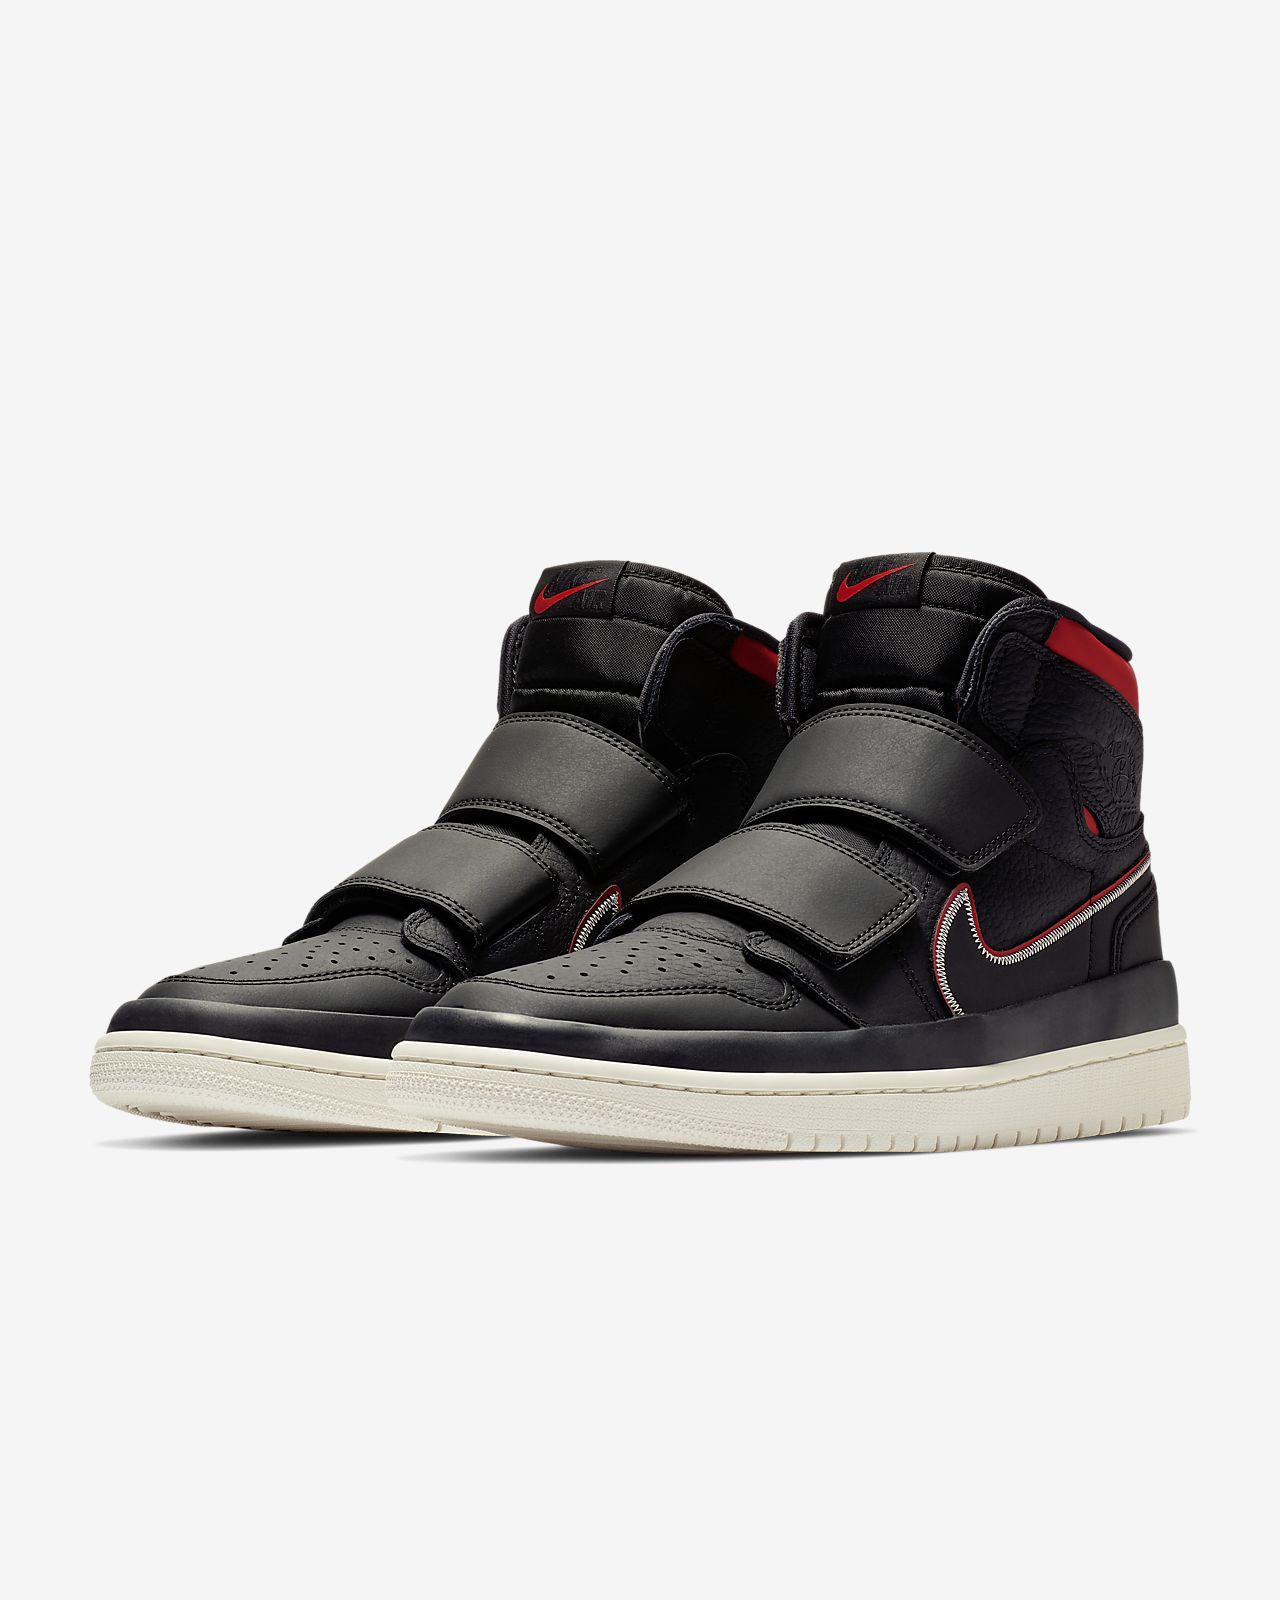 c31e87c95620 Air Jordan 1 Retro High Double-Strap Men s Shoe. Nike.com AU